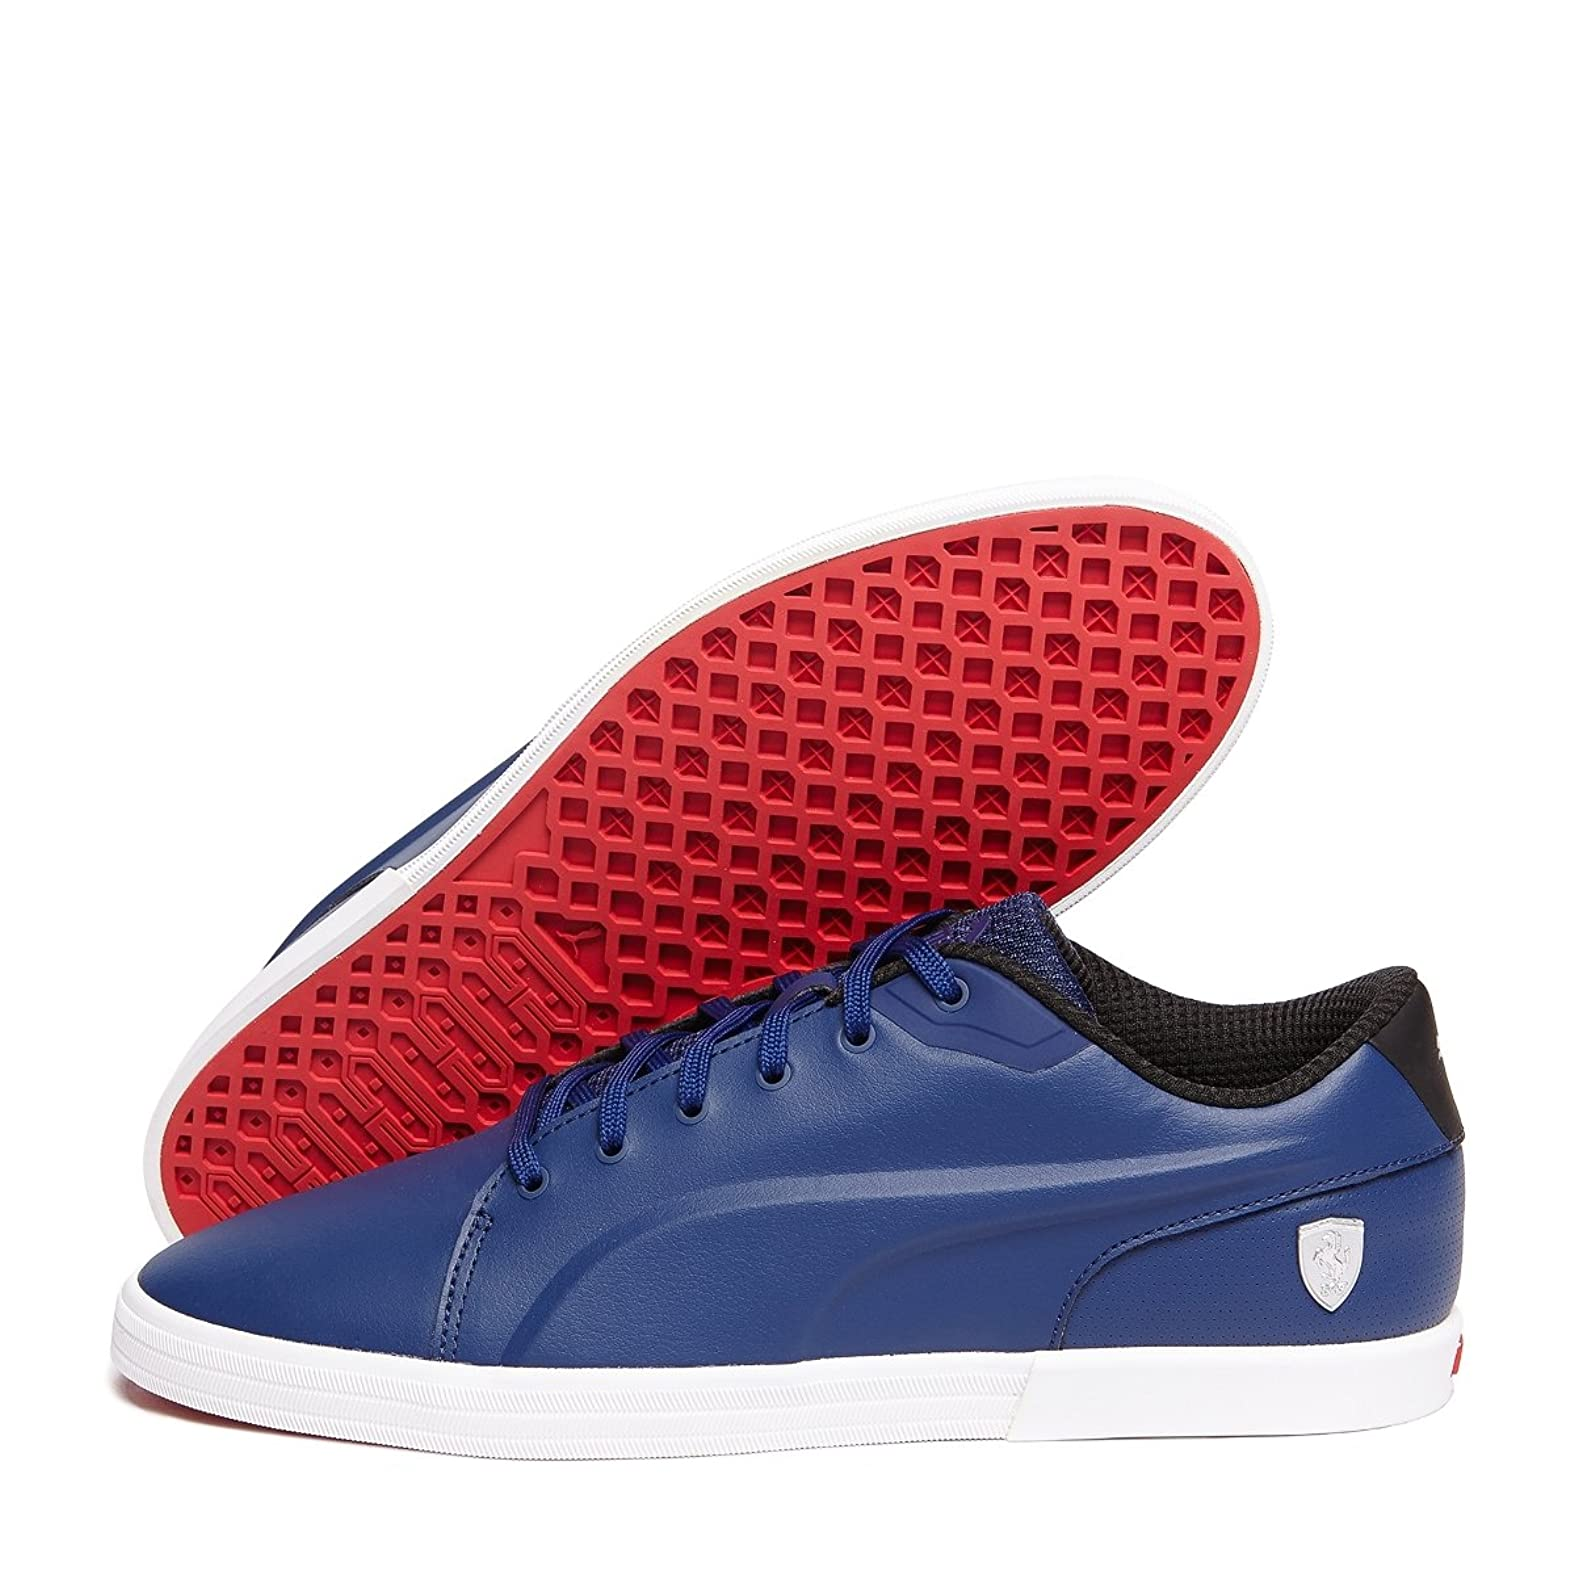 puma cat asp future free man the og shoes worldwide shipping red sf index cheap for racing scuderia ferrari